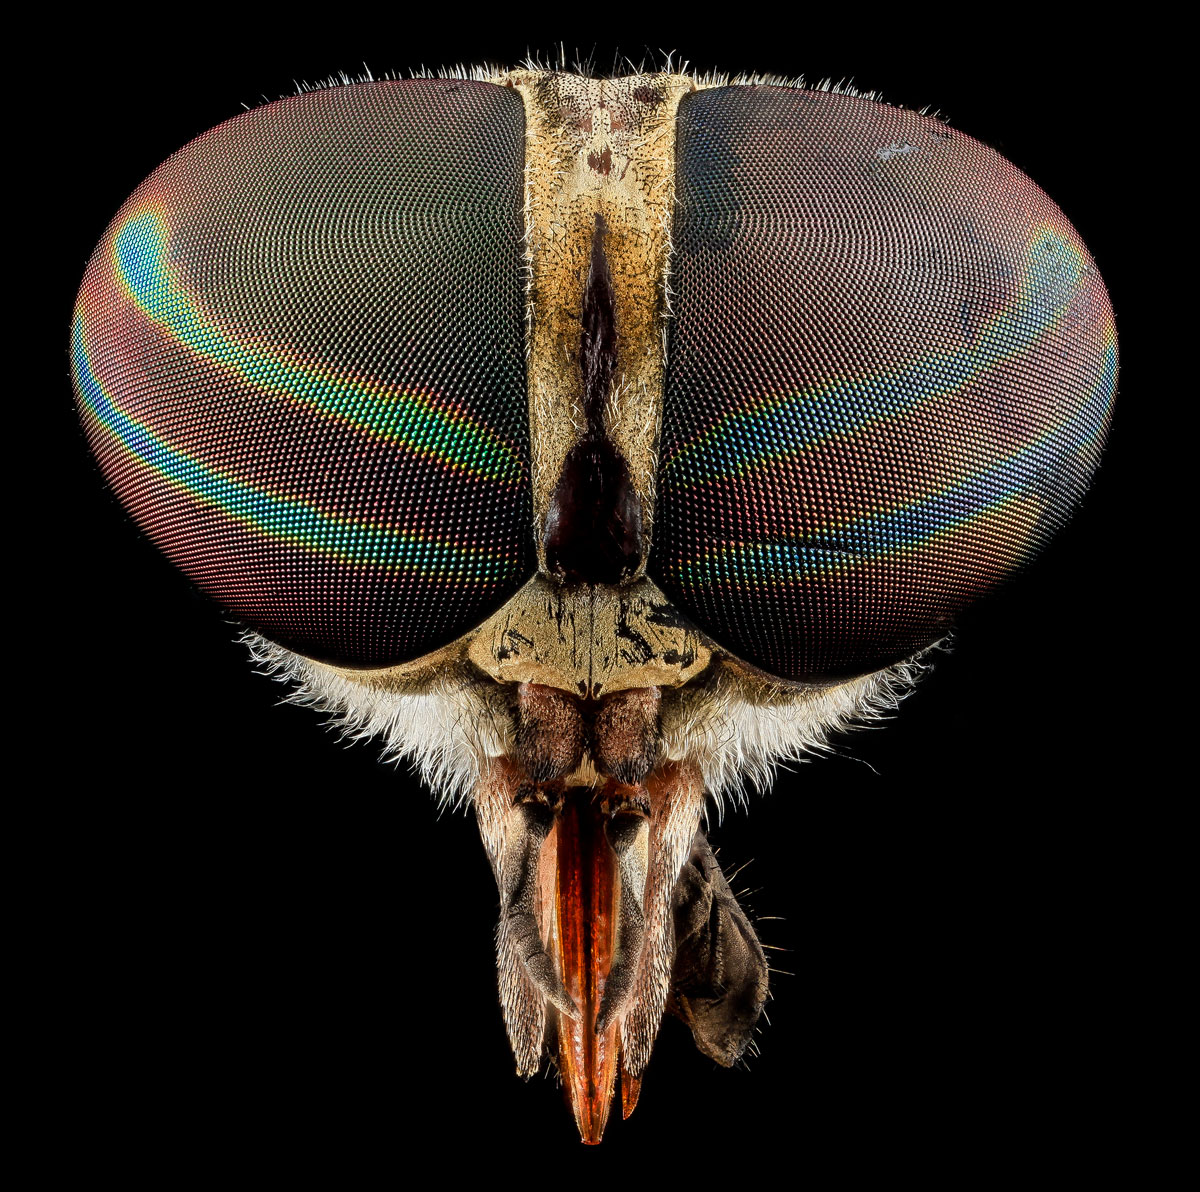 close-ups-of-insect-eyes-by-usgs-biml-6